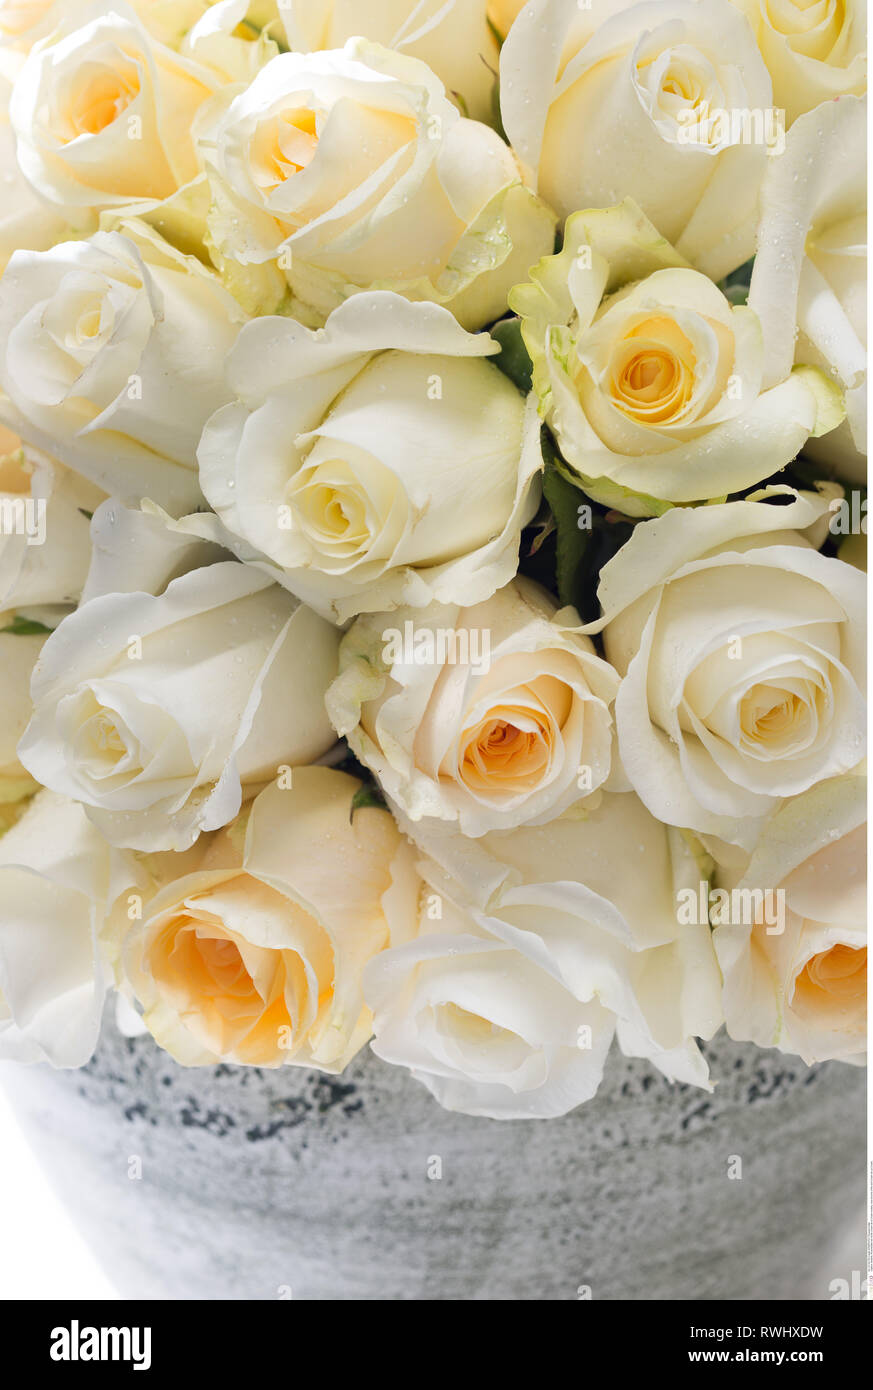 botany, rose blooms of the sort Cream de La , Caution! For Greetingcard-Use / Postcard-Use In German Speaking Countries Certain Restrictions May Apply - Stock Image